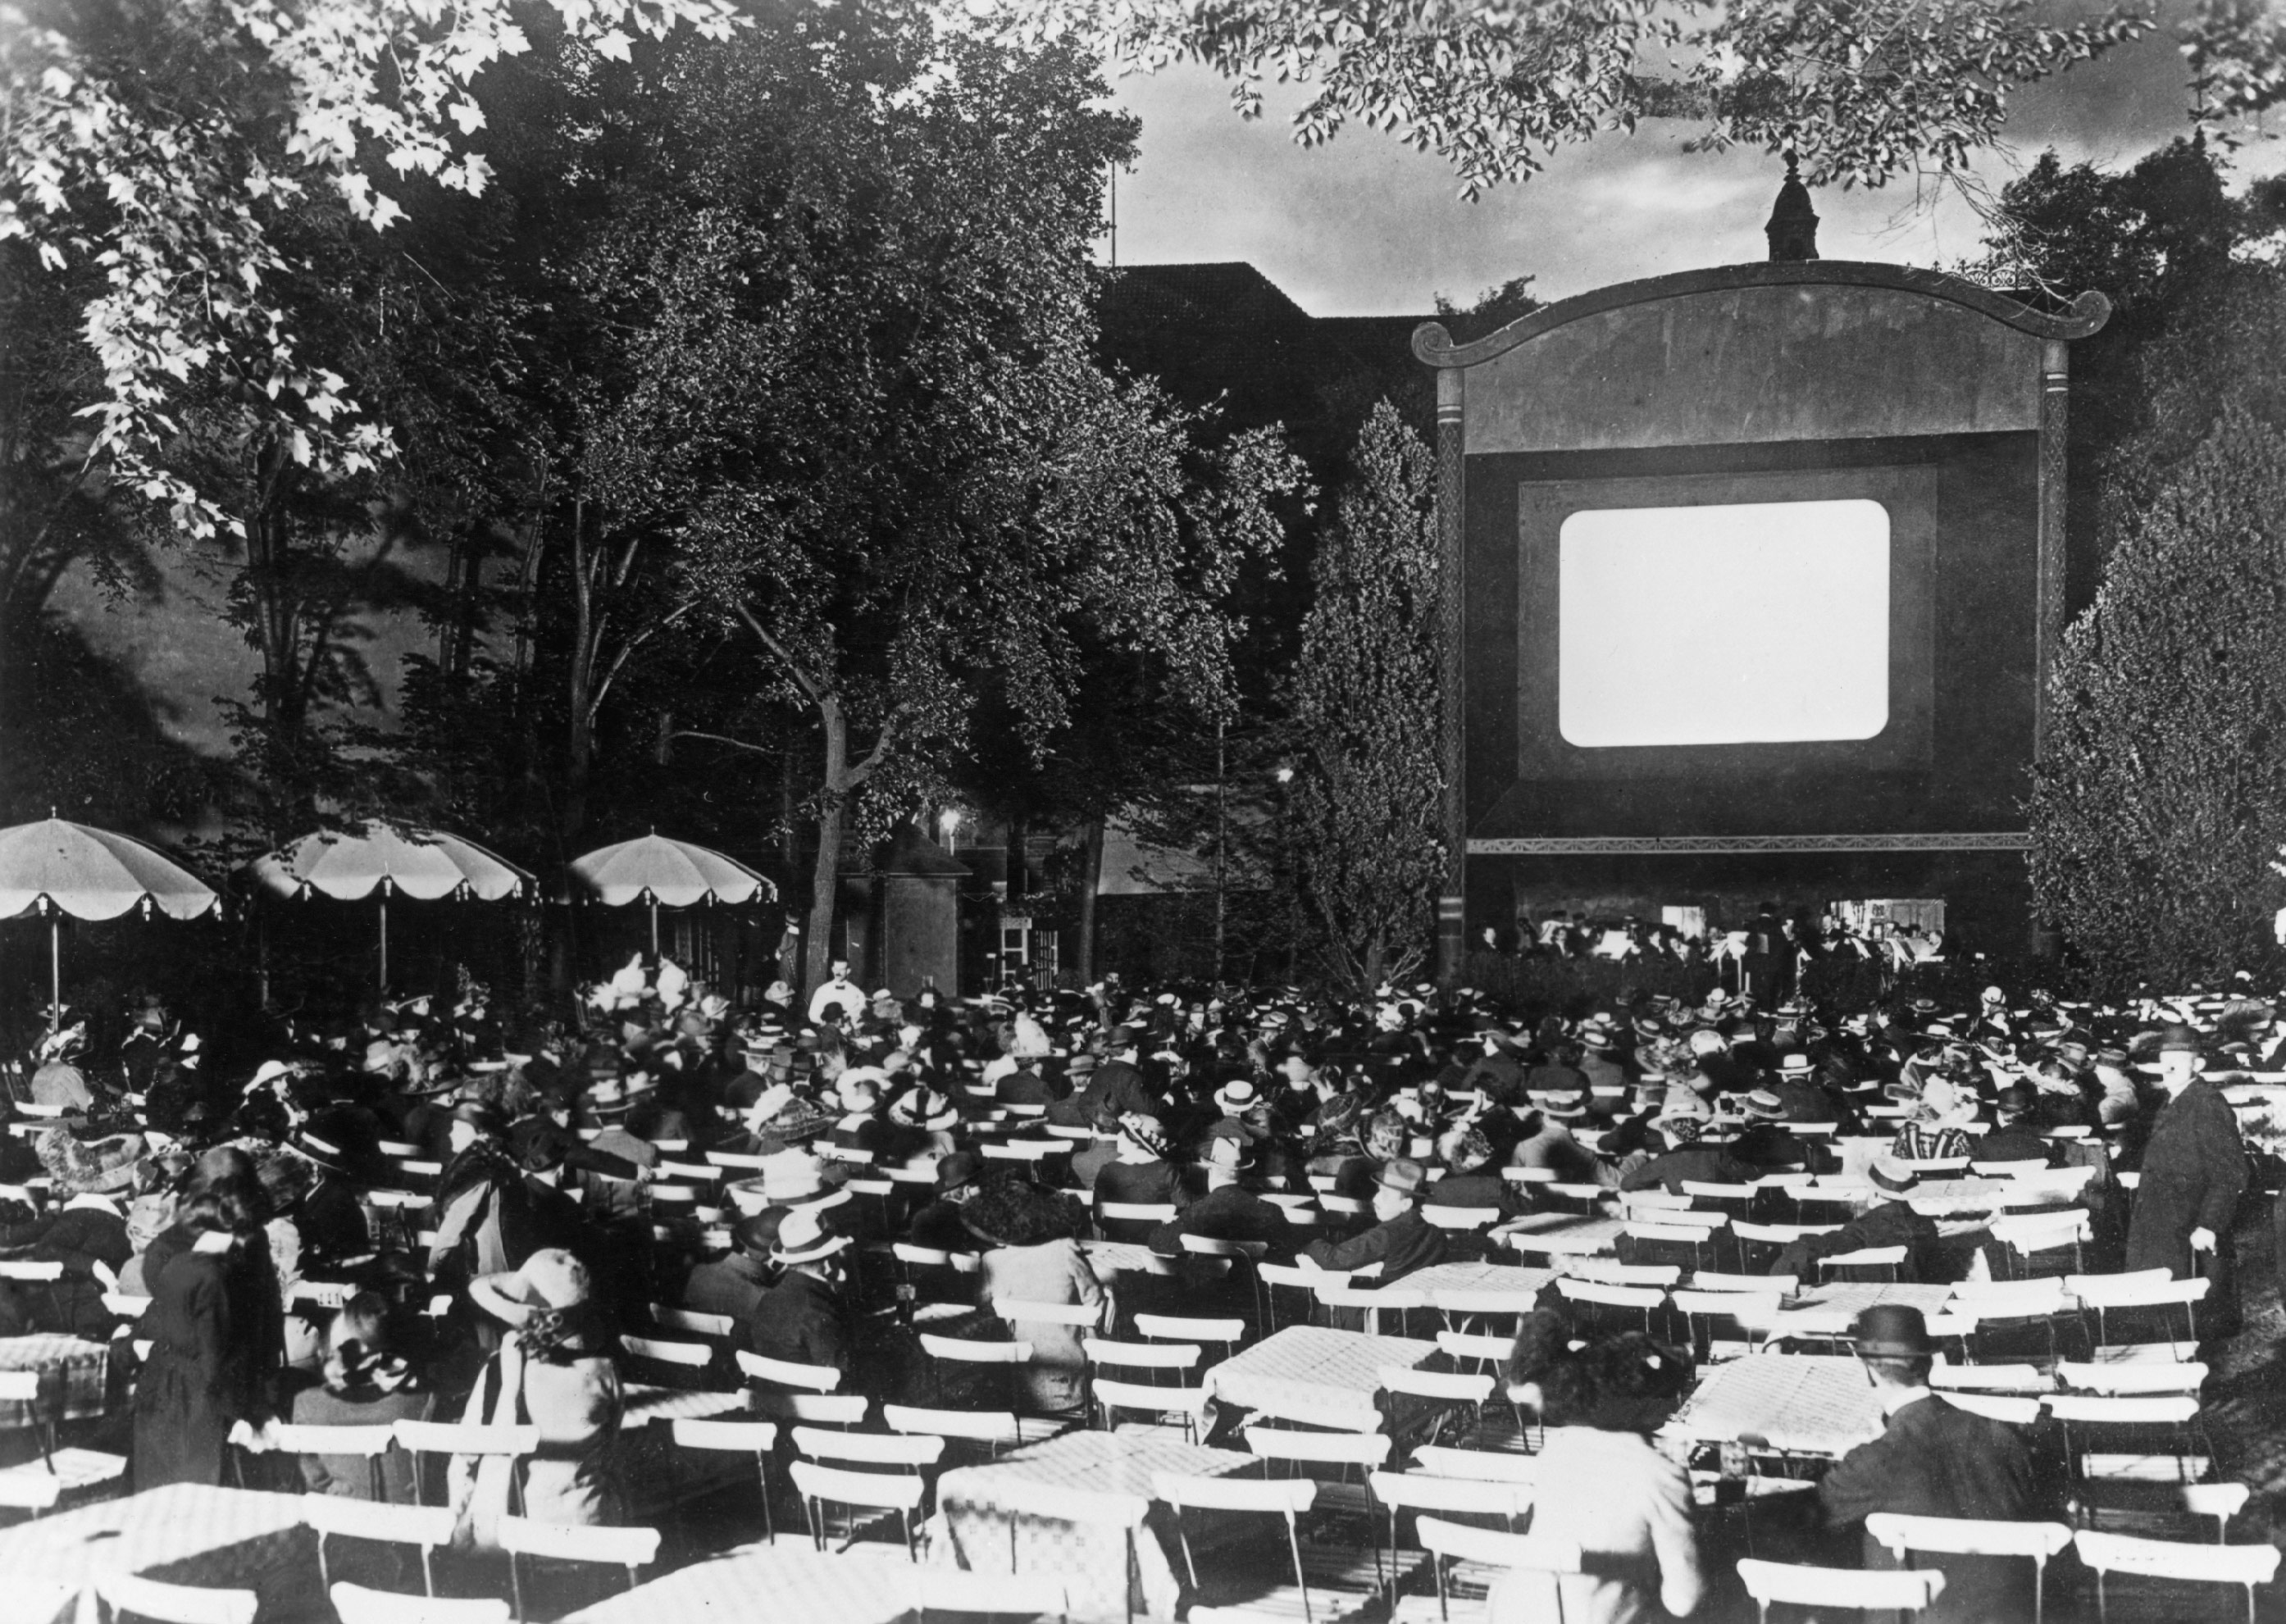 Black and white photo: view of the screen with guests